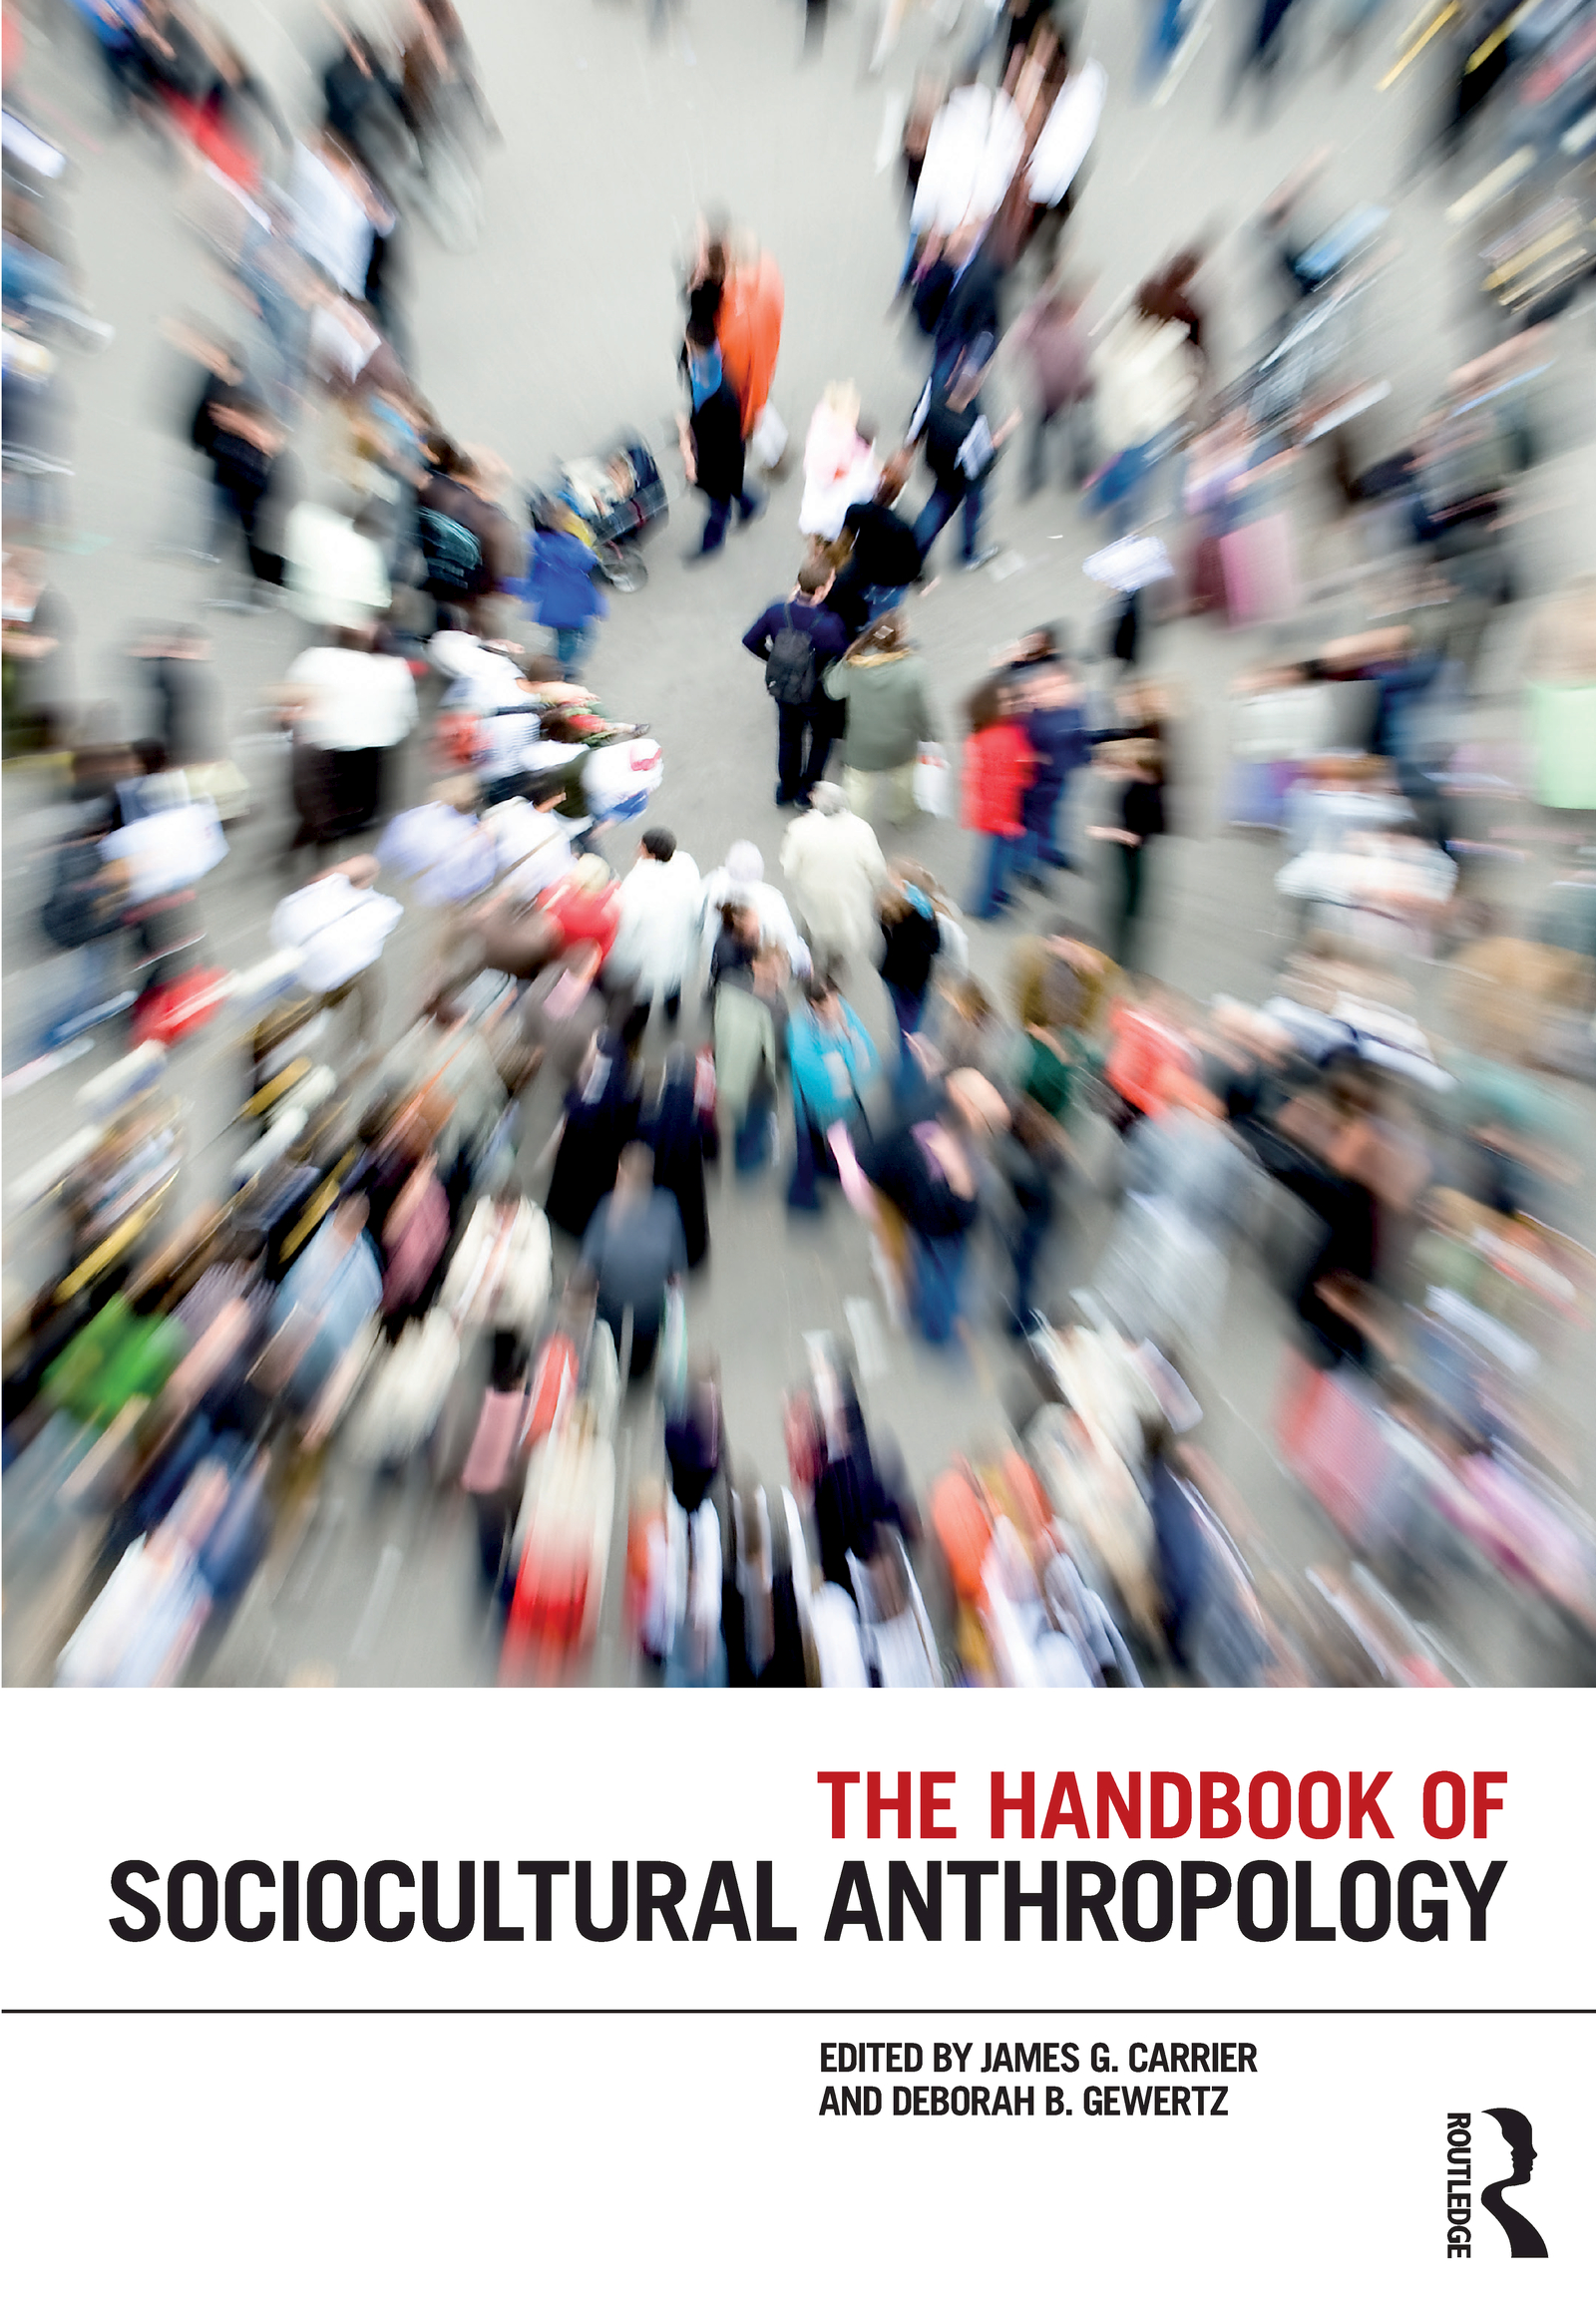 The Handbook of Sociocultural Anthropology